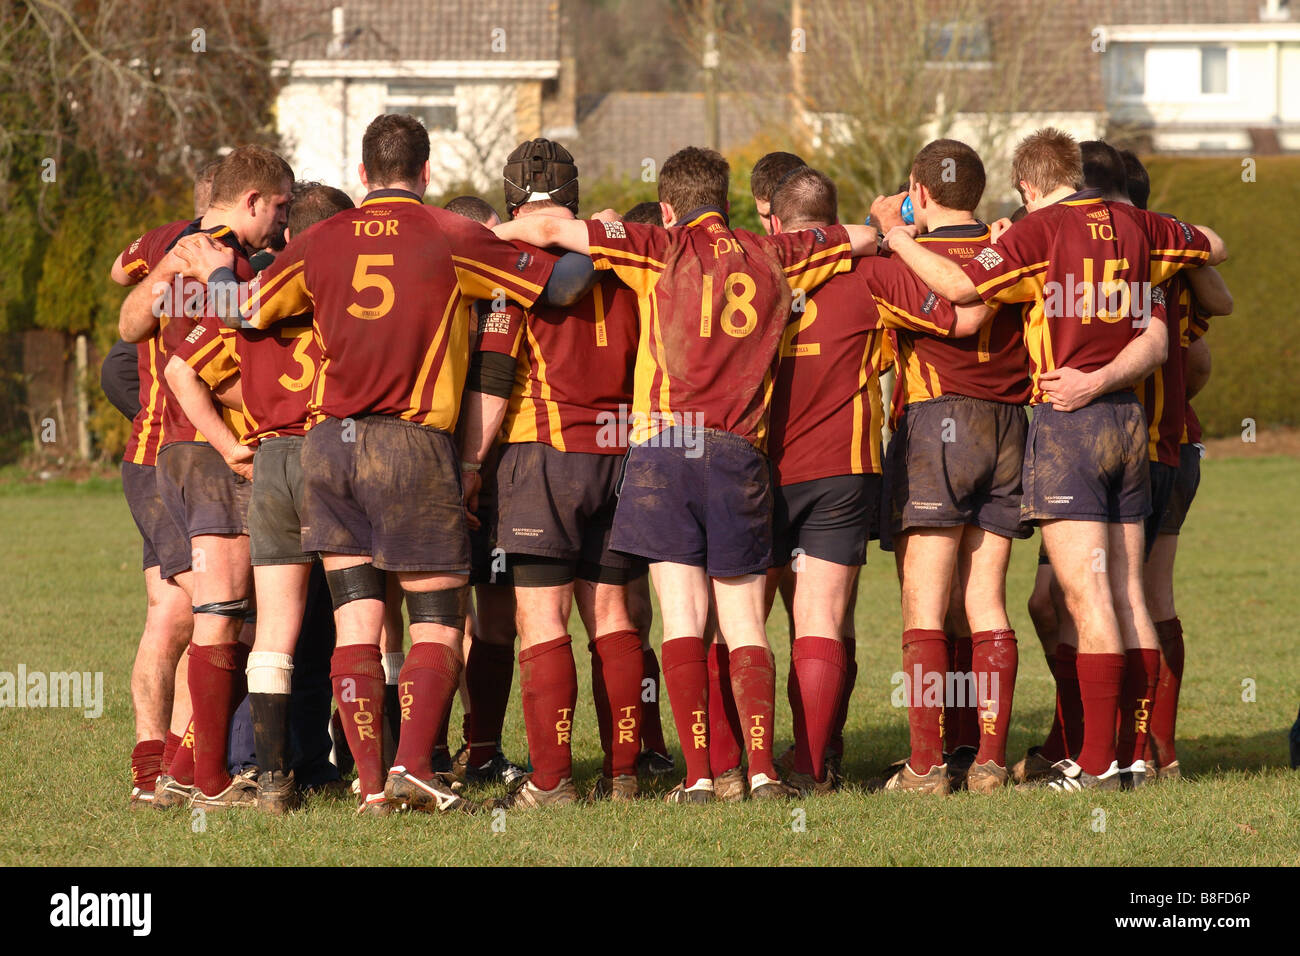 Sport rugby match half time team talk players squad members gather around their coach - Stock Image